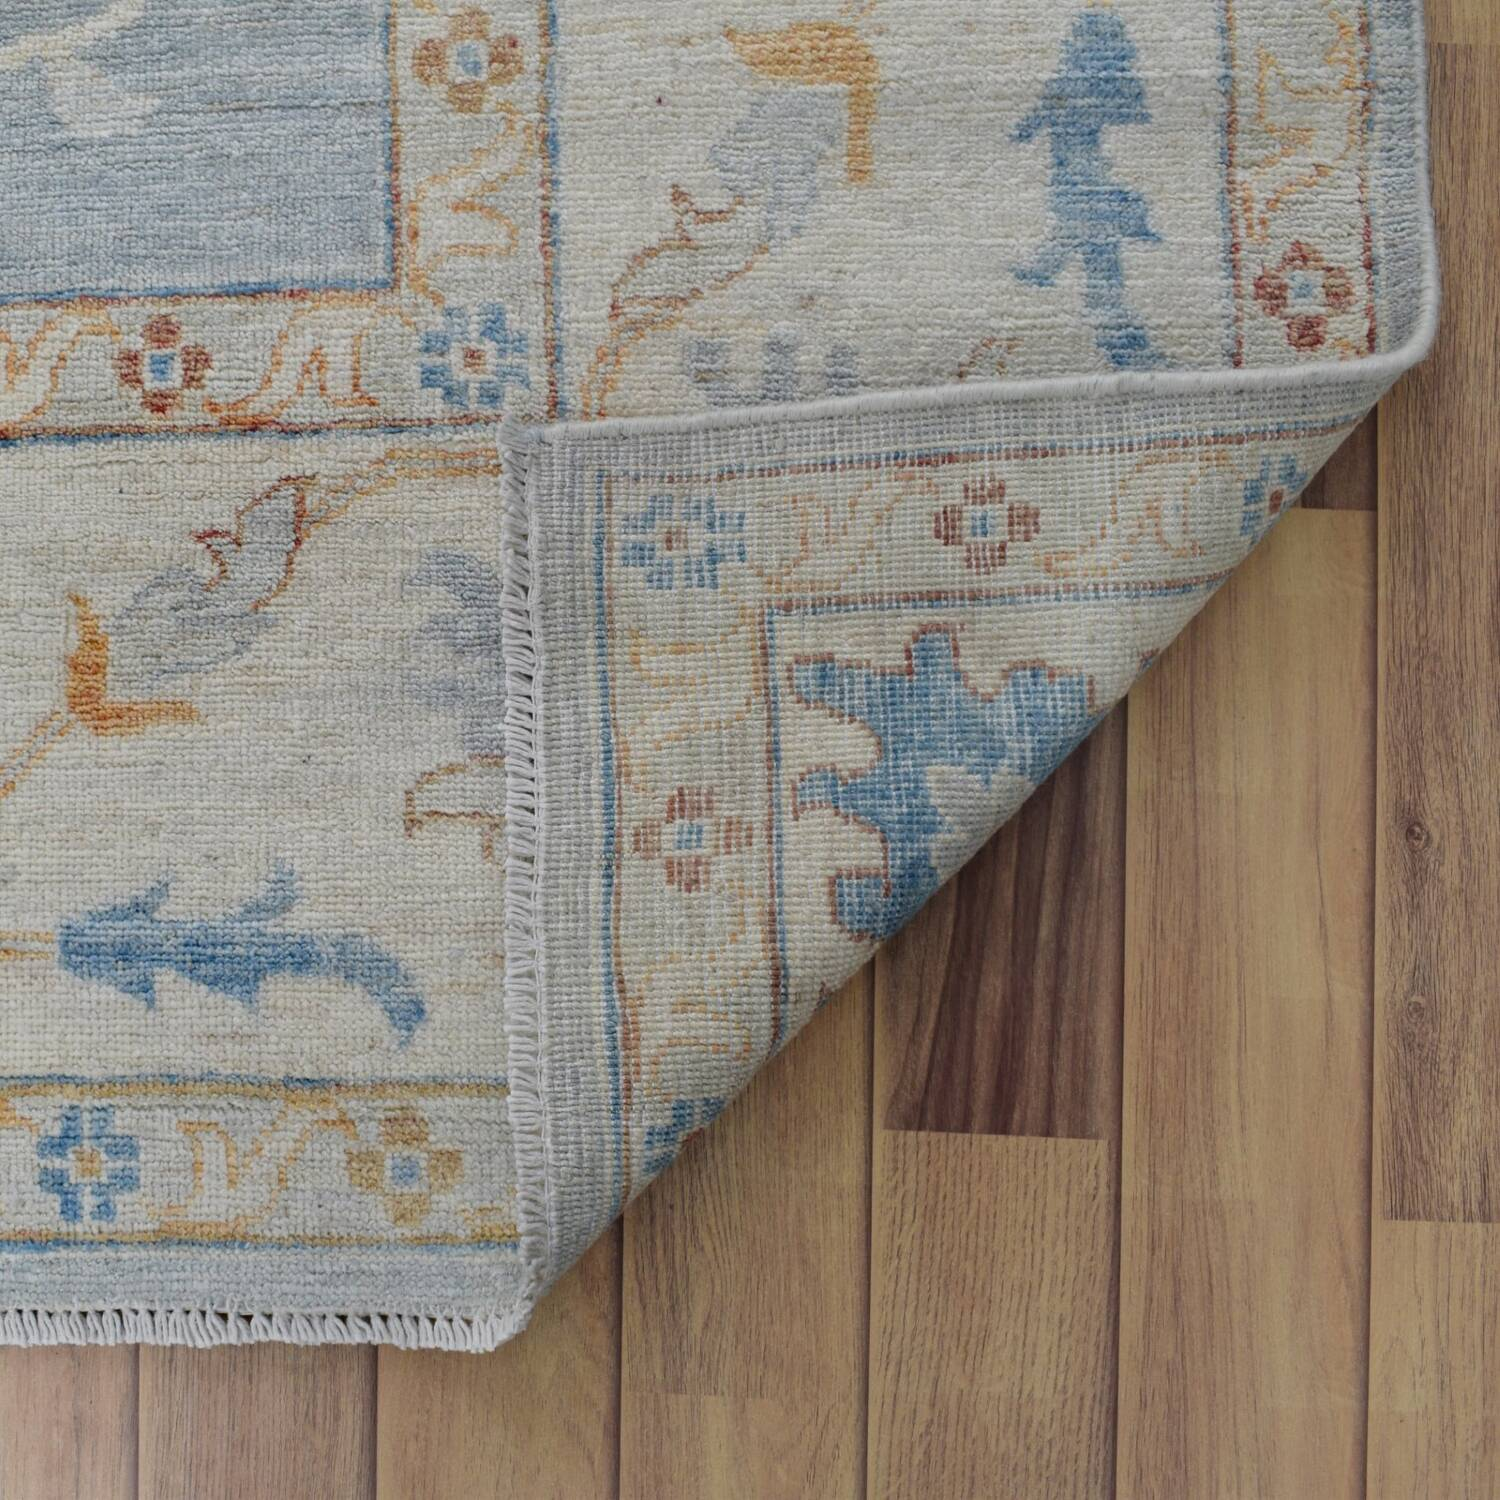 All-Over Floral Oushak Turkish Oriental Area Rug 9x12 image 7